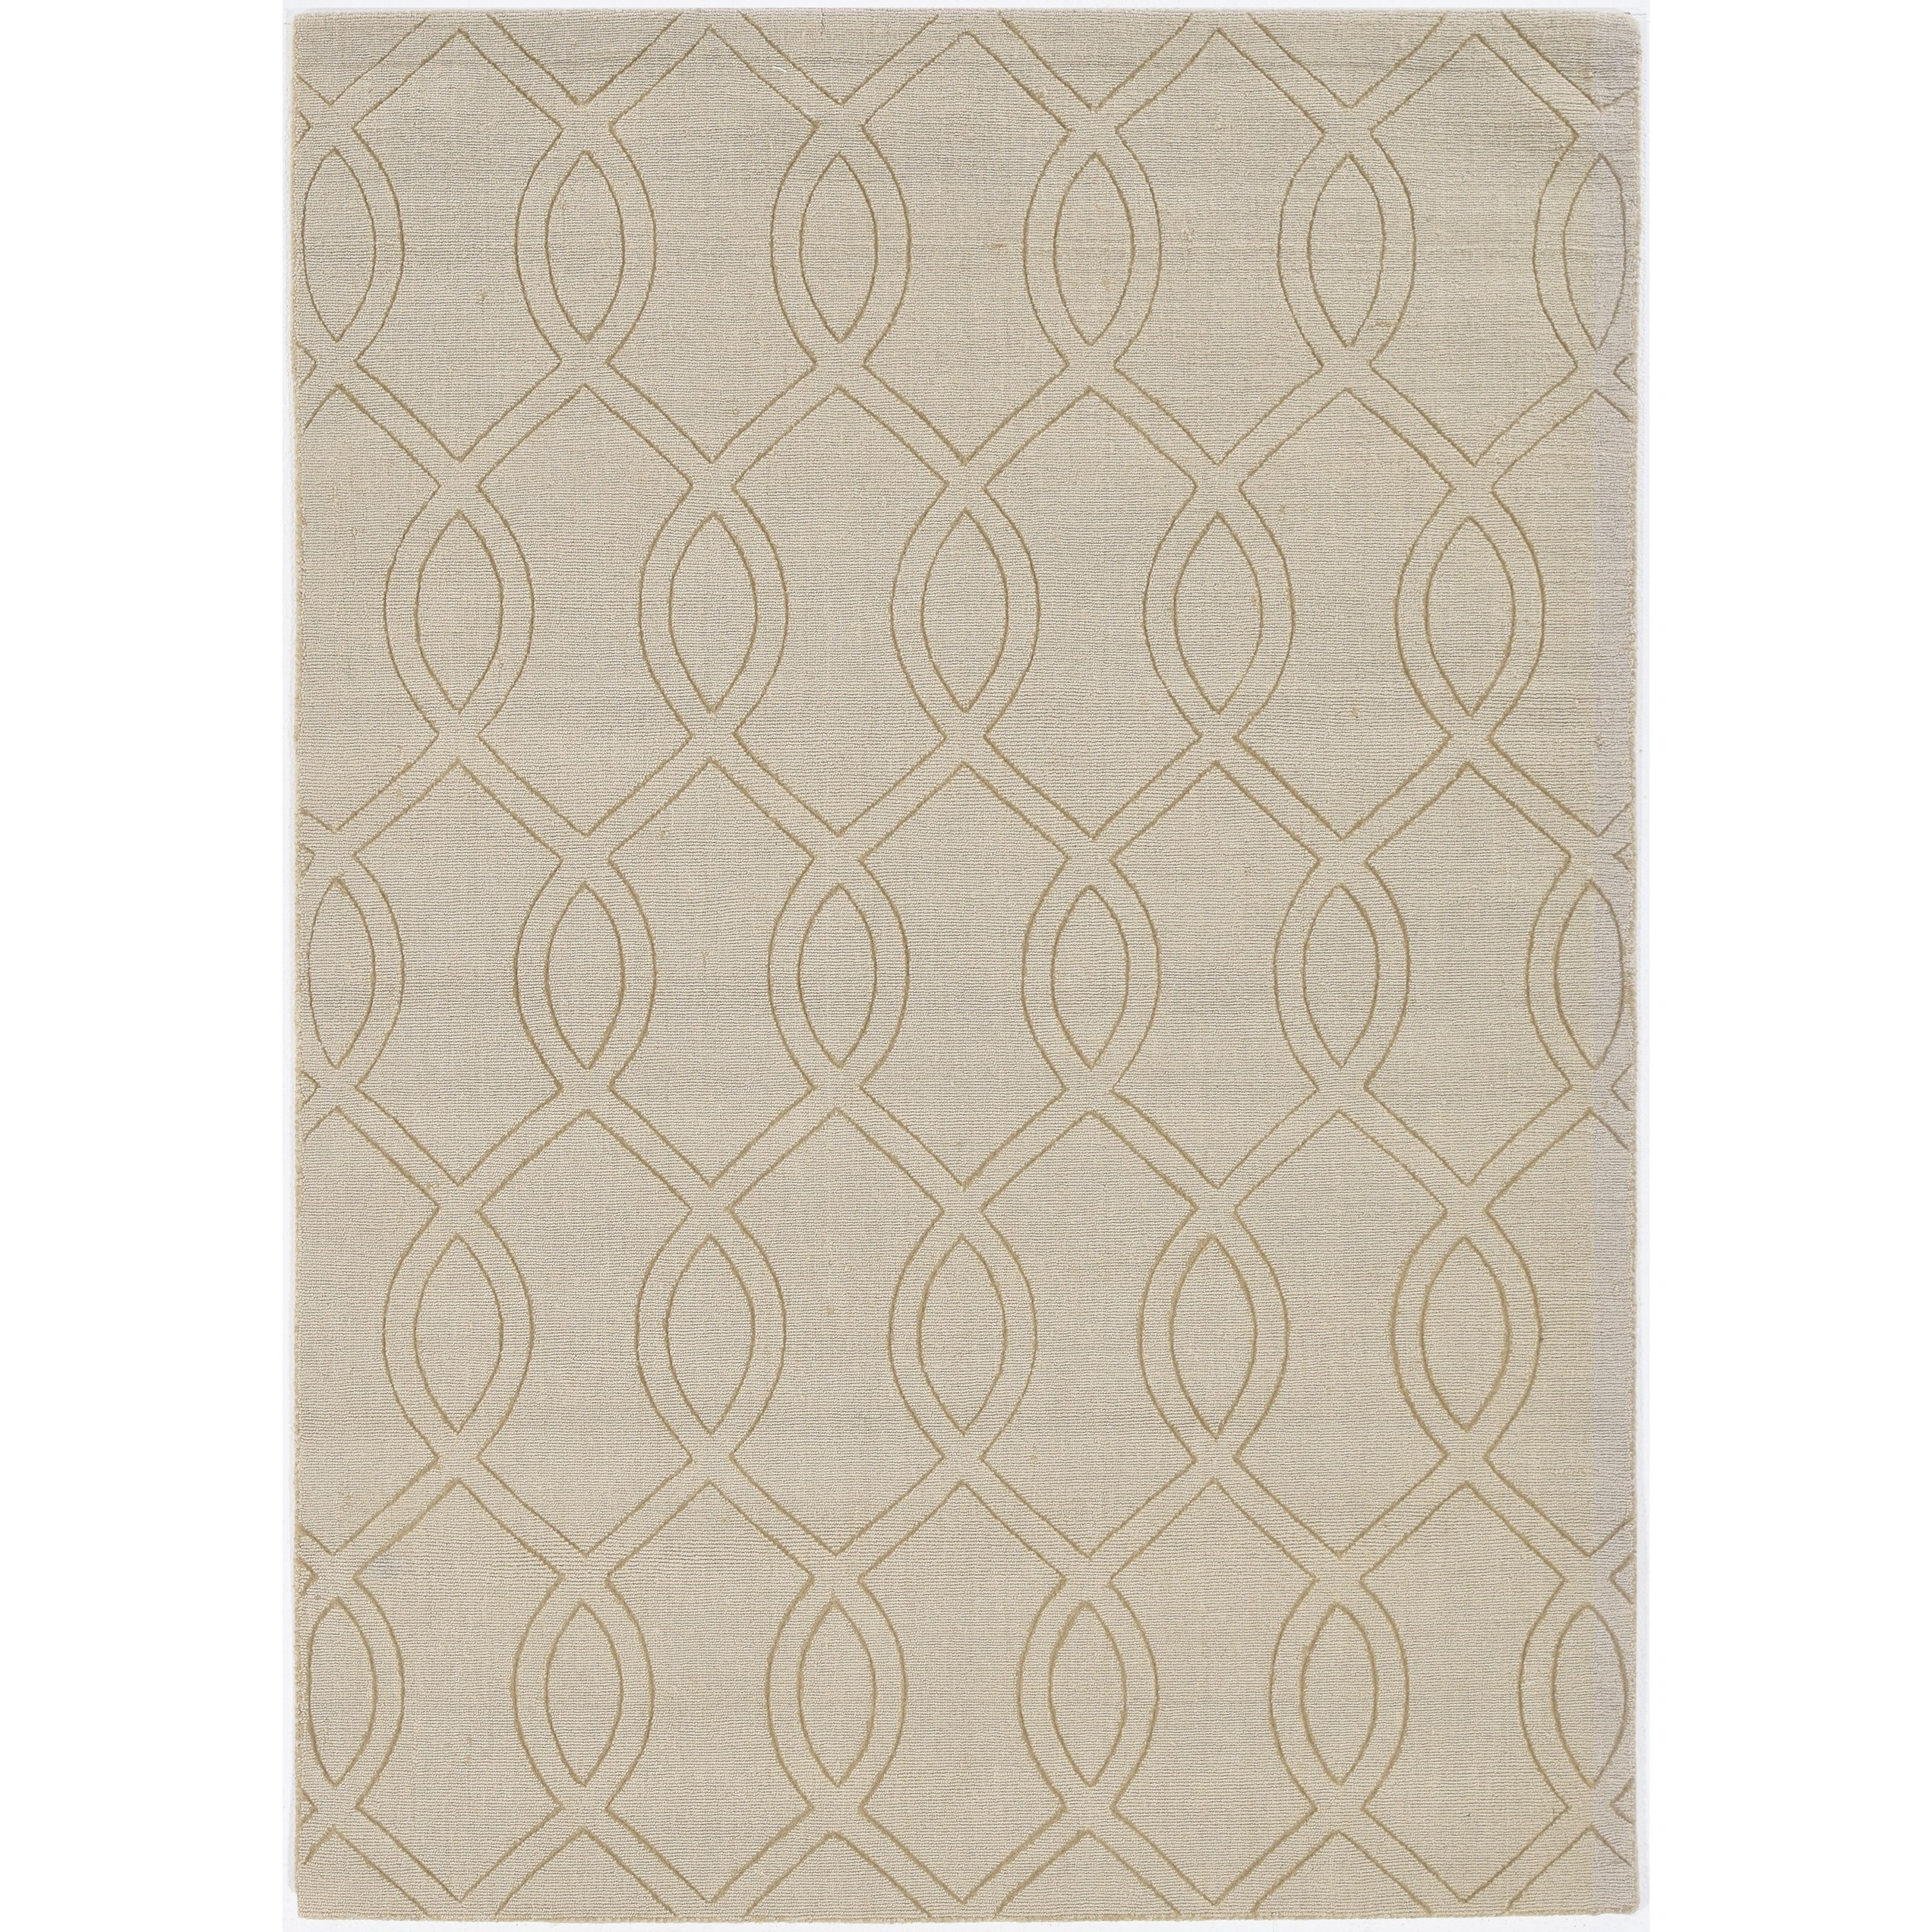 "Avery 7'6"" x 9'6"" Beige Ellison Rug by Kas at Darvin Furniture"